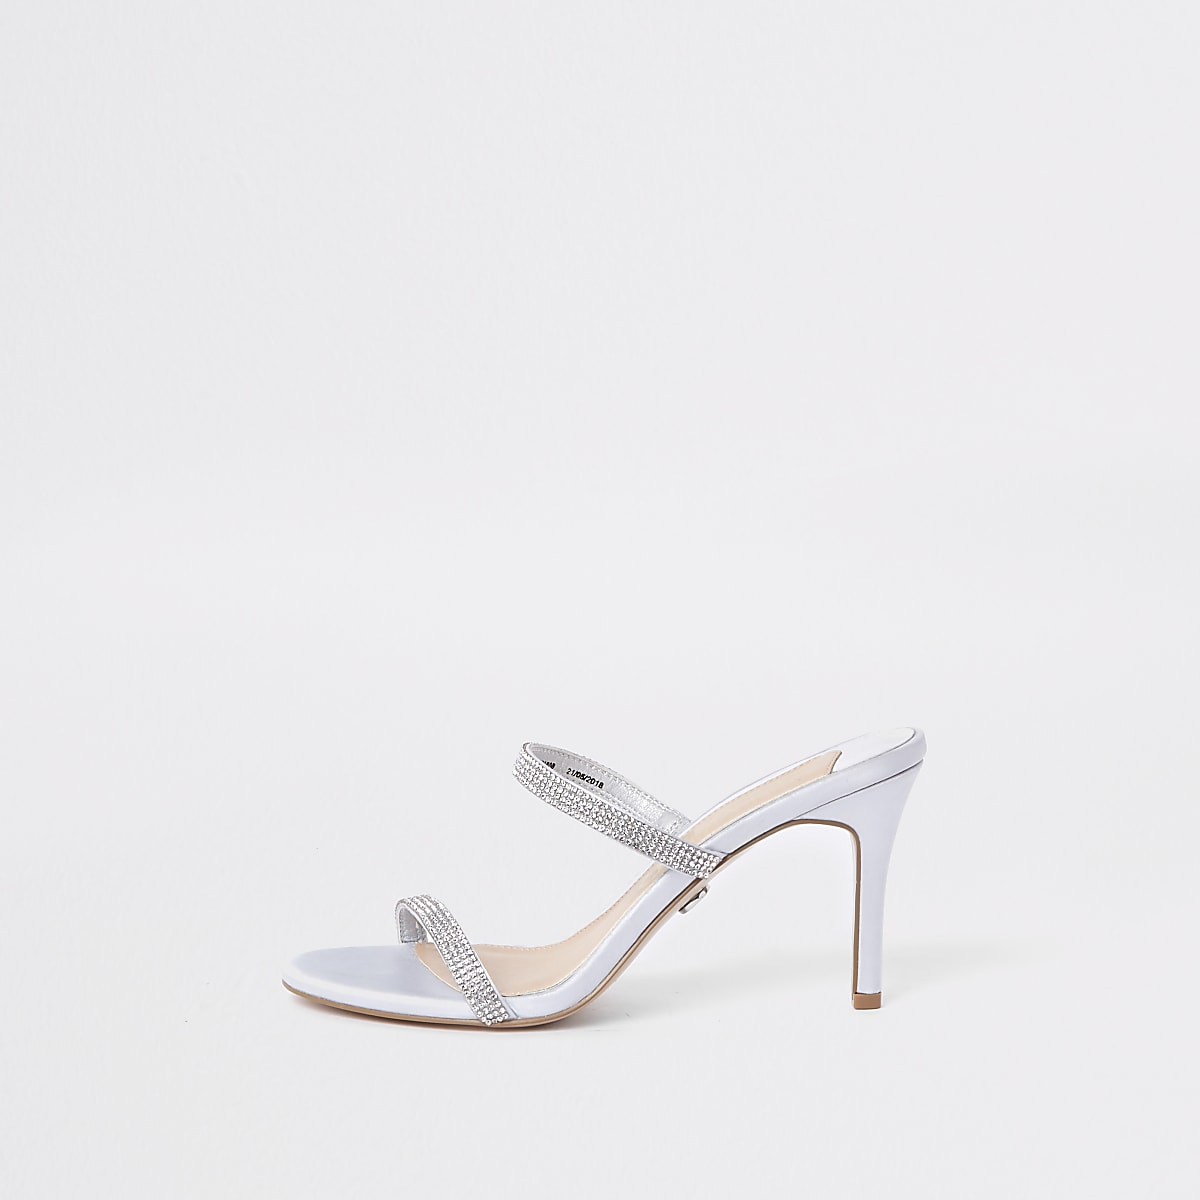 Light grey barely there slip on stiletto mule